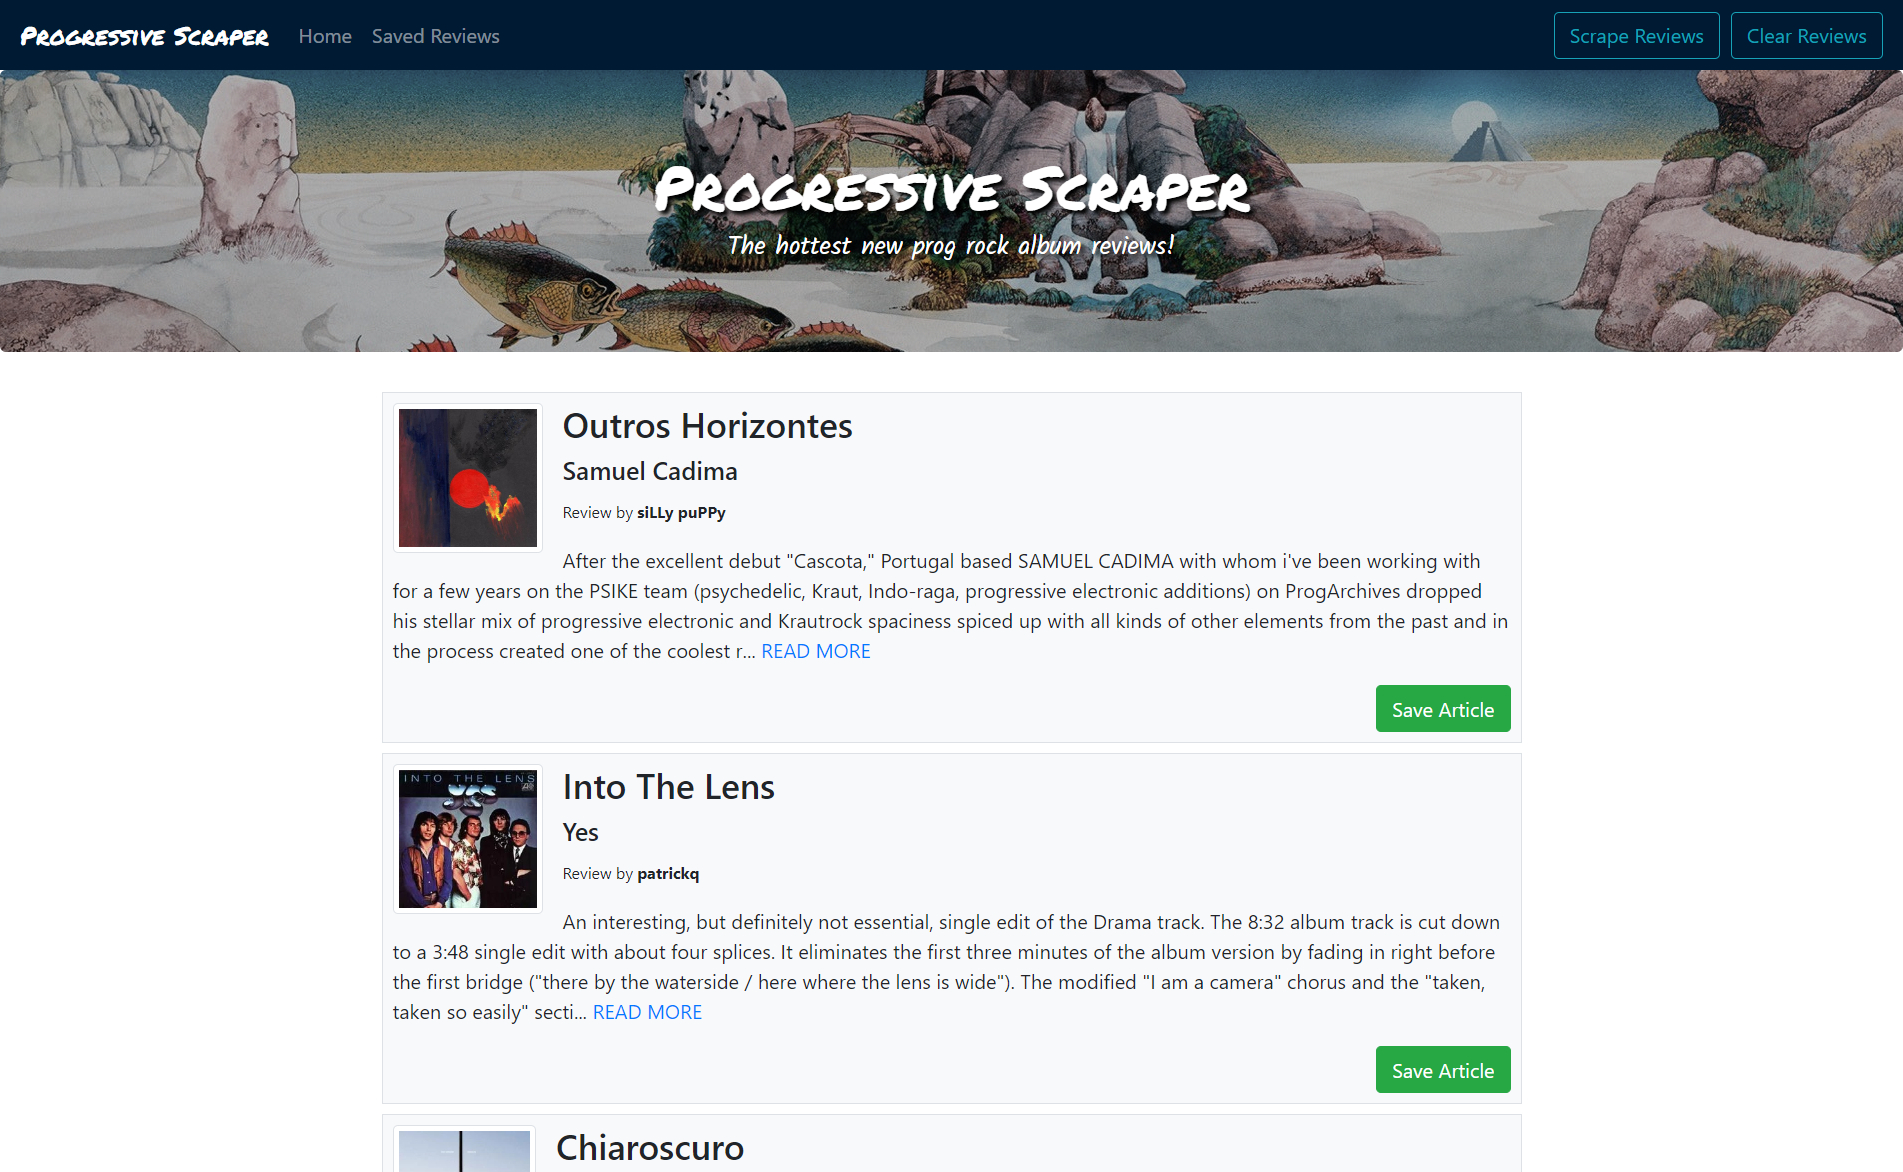 progressive scraper screenshot